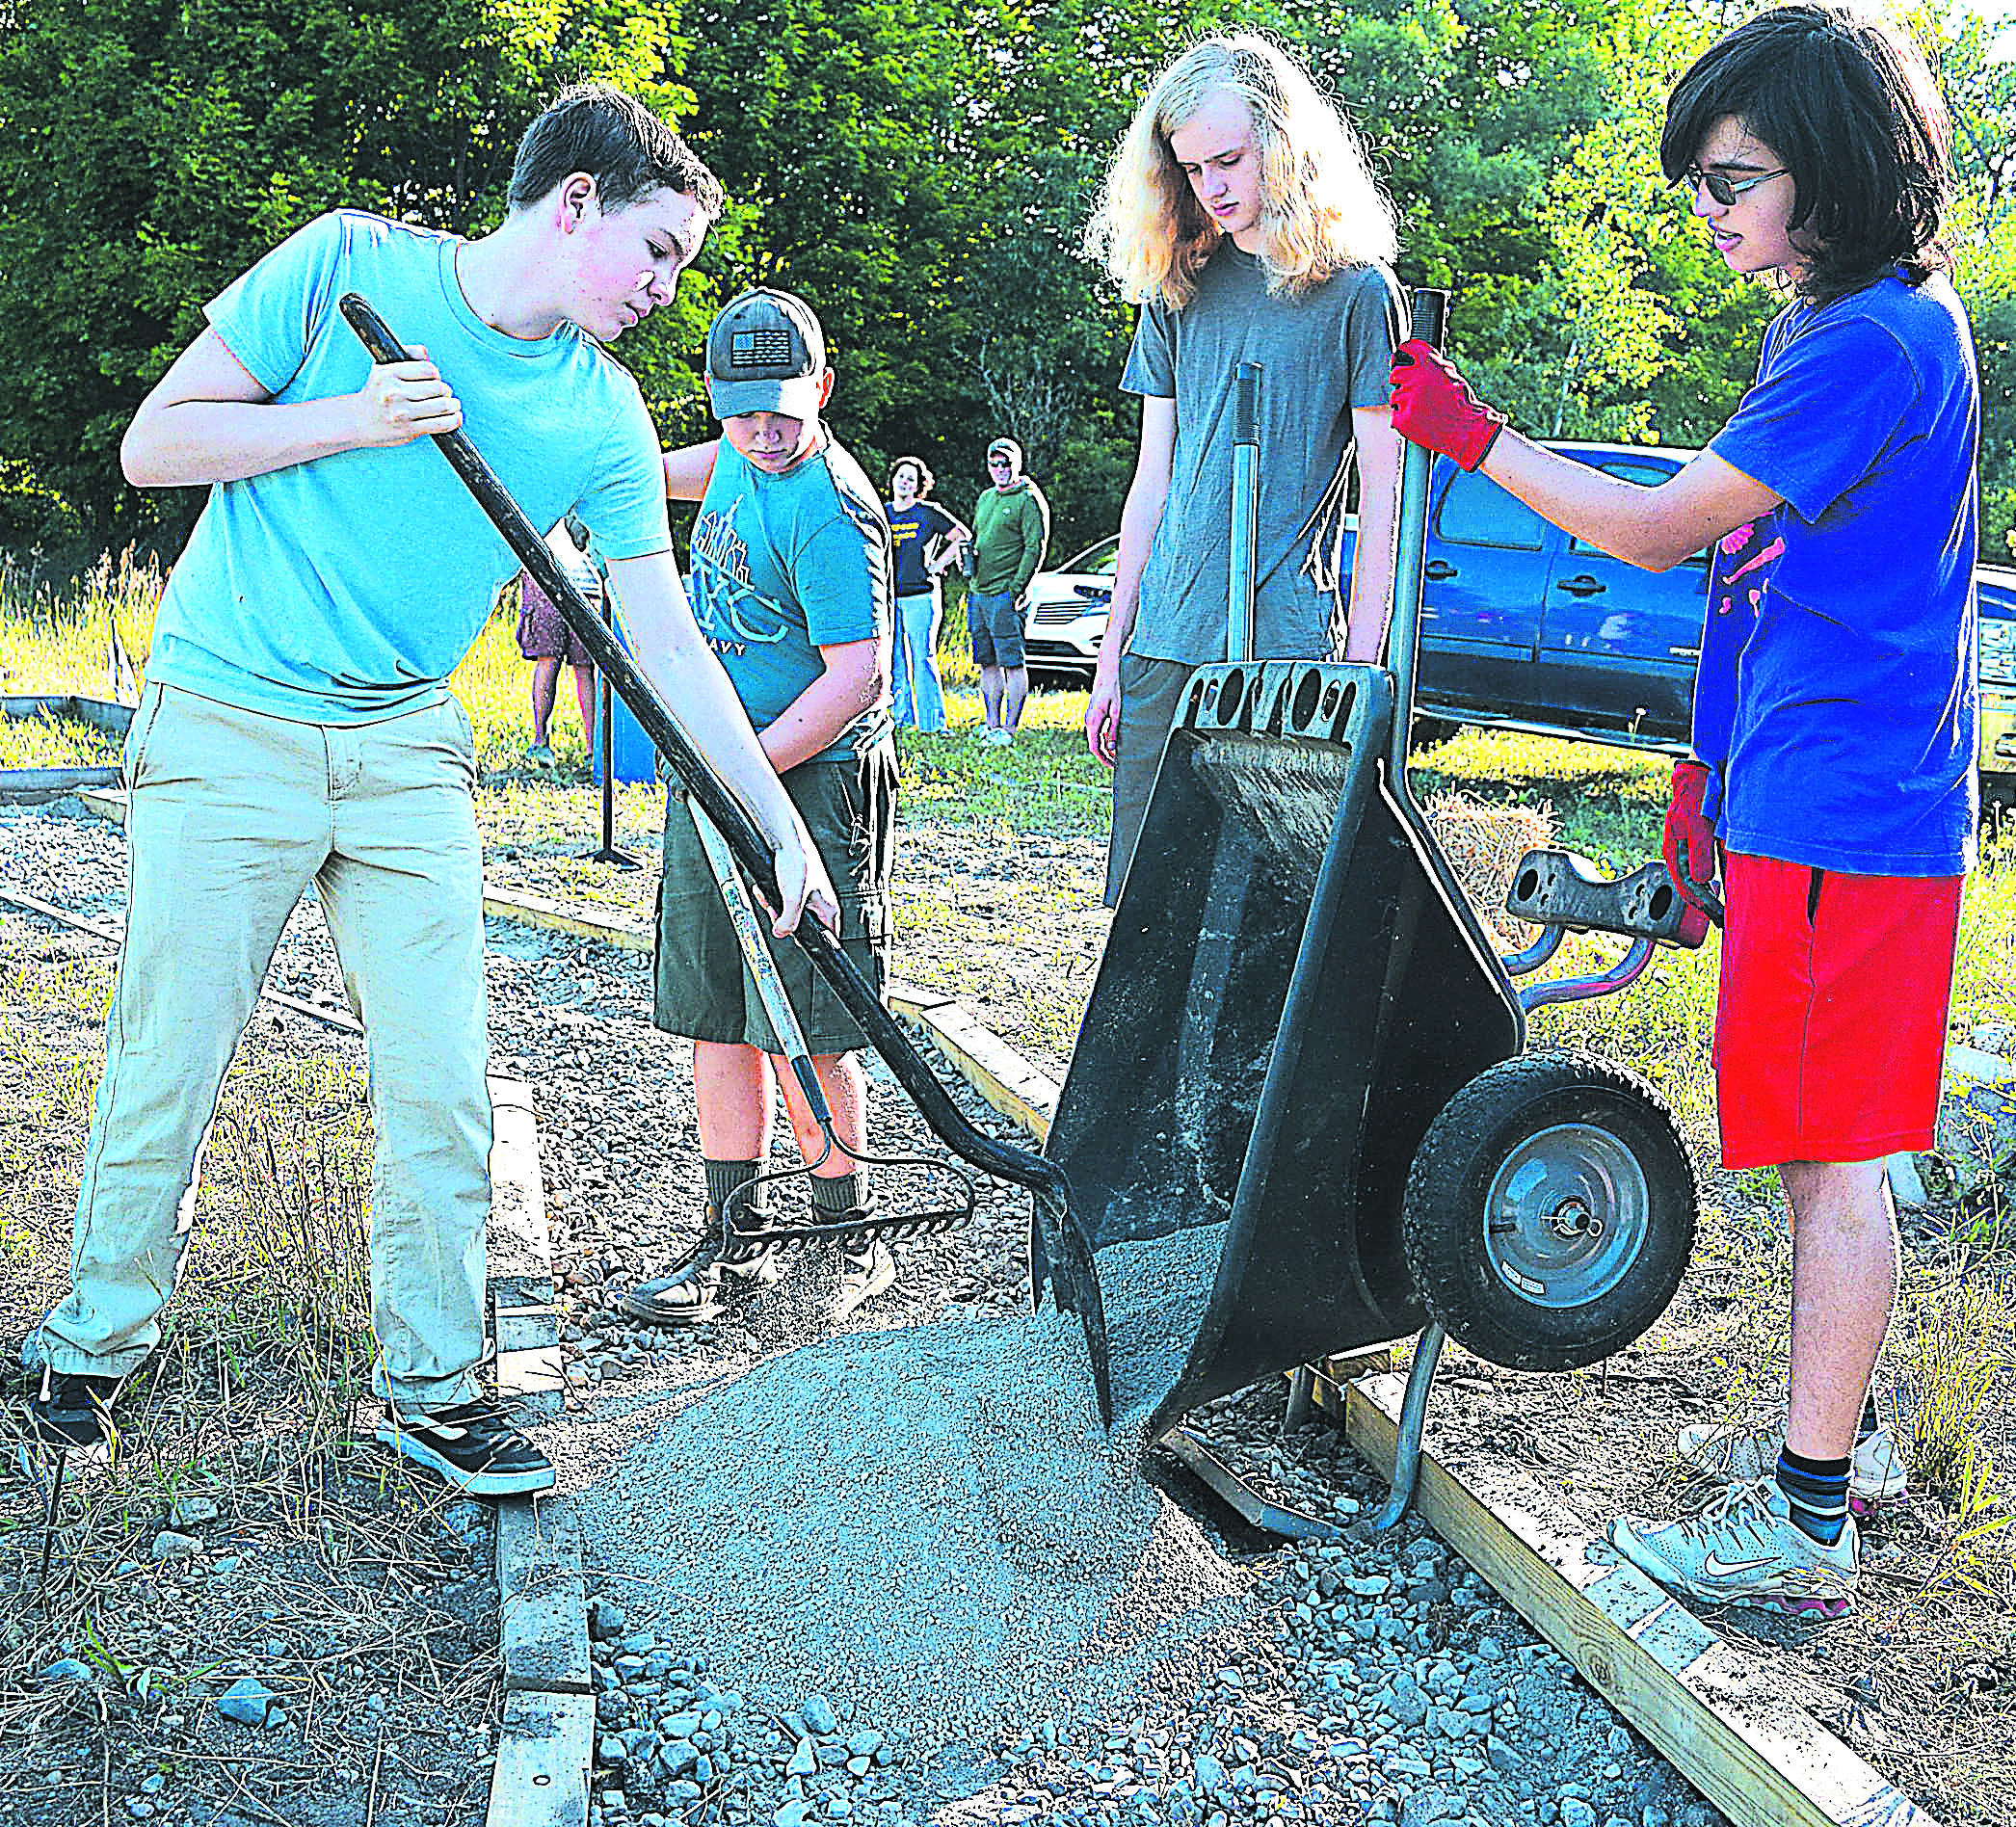 Members of Boy Scout Troop 366 spread material Saturday morning to create a small path that will link the Polly Ann Trail to a yet-to-be-built 12-foot-by-12-foot concrete pad with a picnic table. Pictured (from left) are scouts John Keller, Gavin Dell, Eagle candidate Logan Streeter and Ian Alexander. Photo by C.J. Carnacchio.